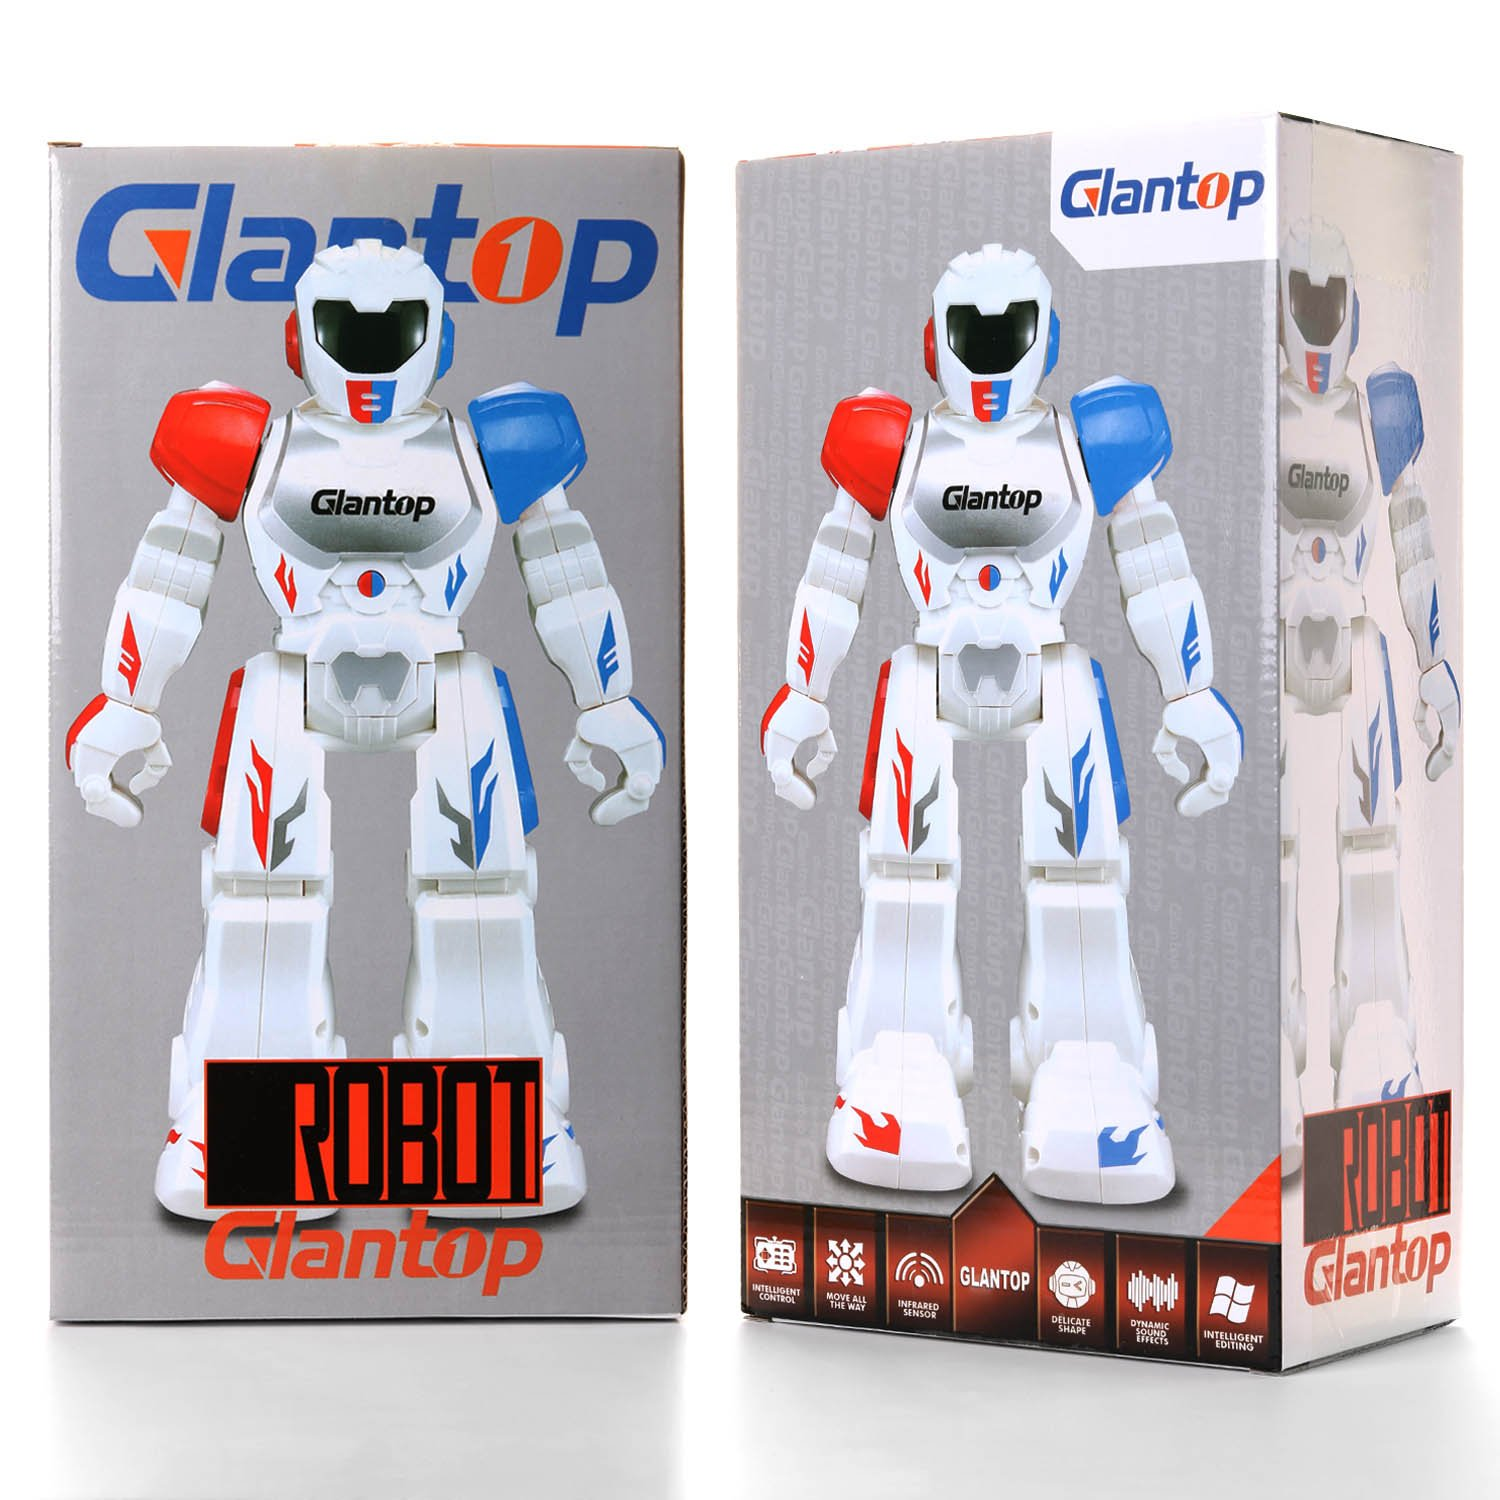 Glantop Remote Control RC Robots Interactive Walking Singing Dancing Smart Programmable Robotics for Kids Boys Girls (Red) by Glantop (Image #9)